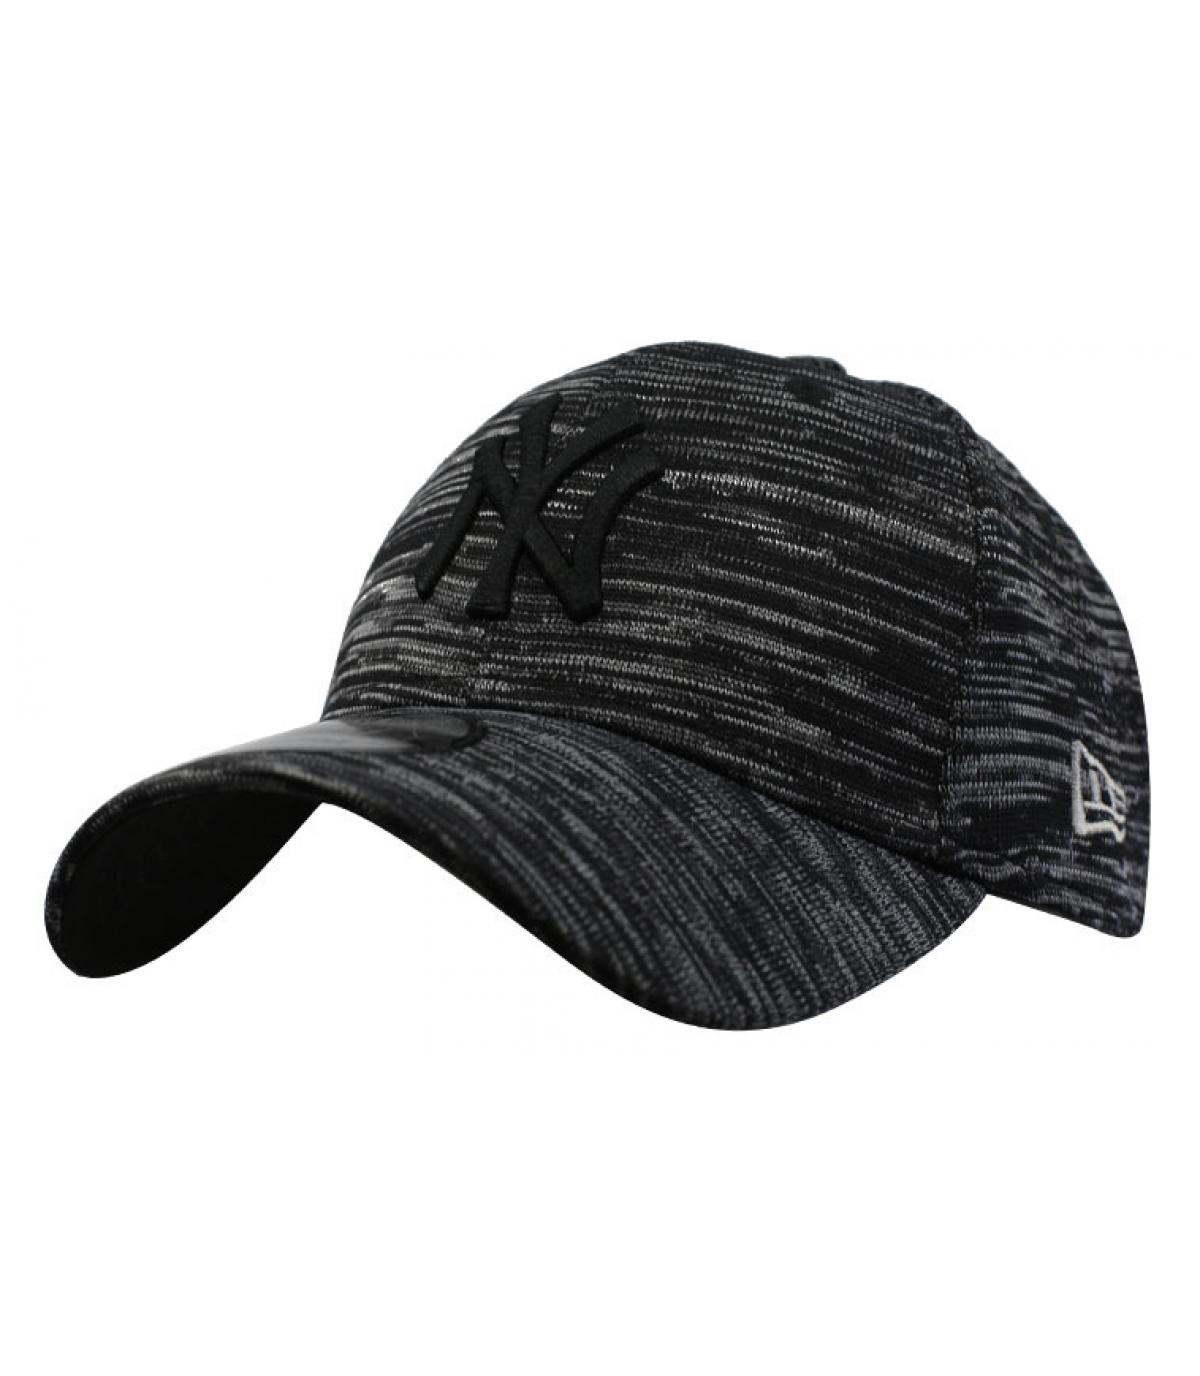 Détails Engineered Fit 9Forty NY graphite - image 2